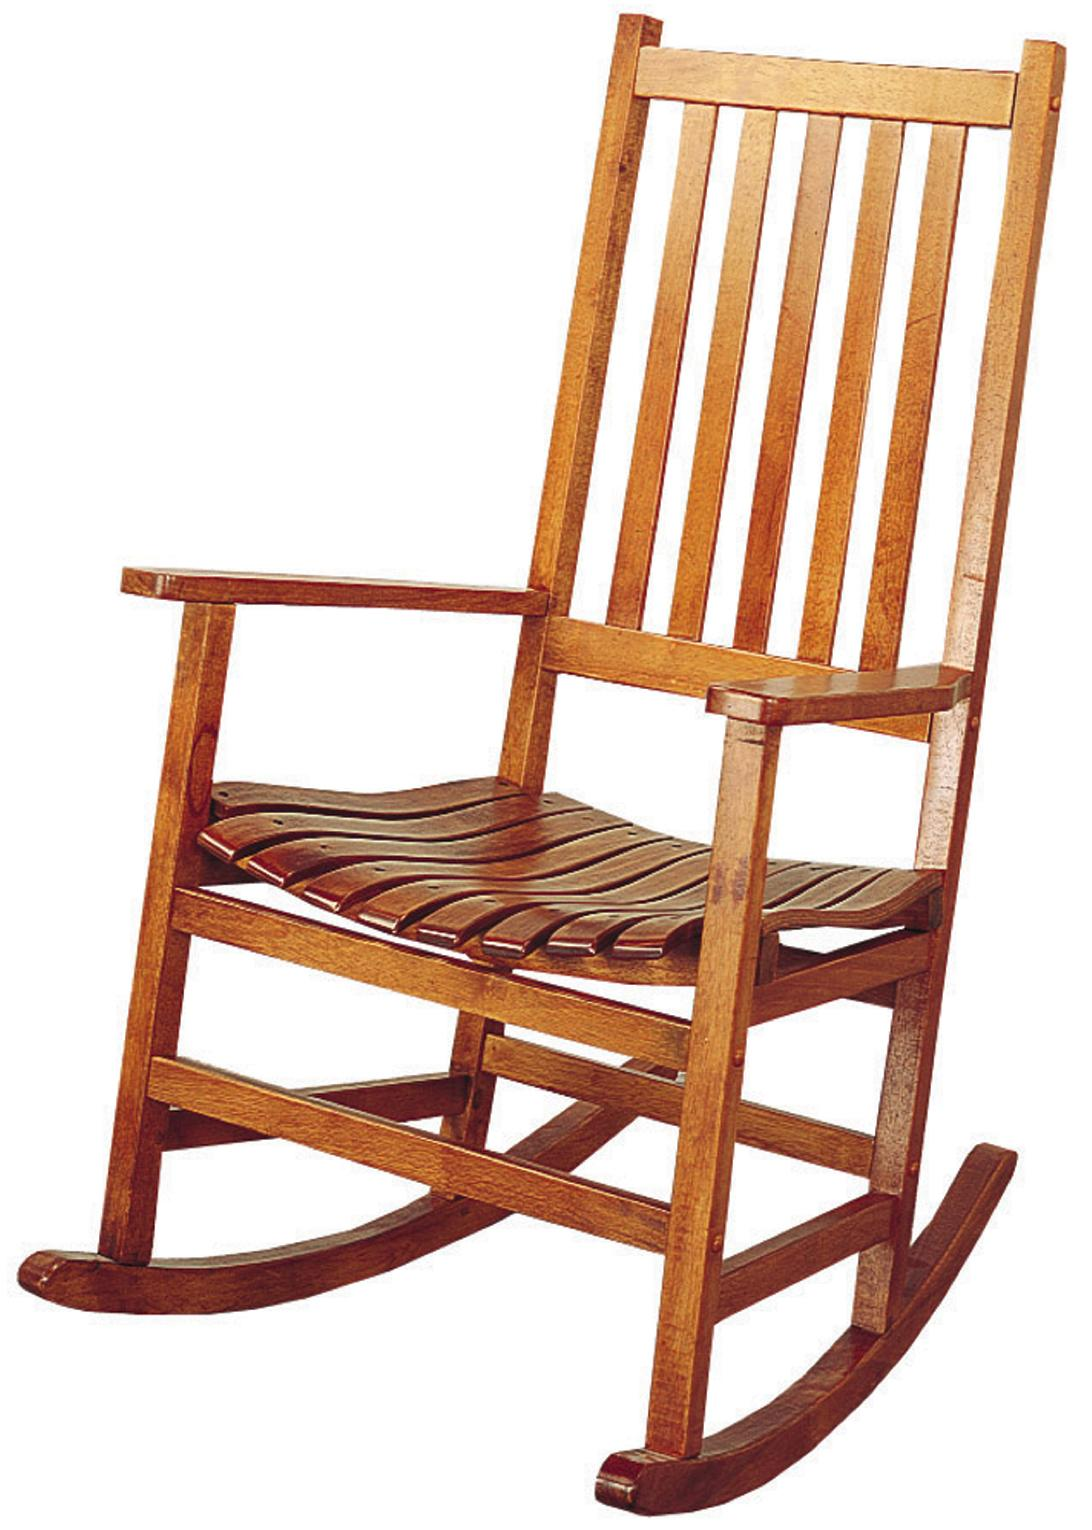 Sweater Rocking Chair. $159.00 Coaster C-Sweater Rocking Chair. $159.00 Coaster Co.-11